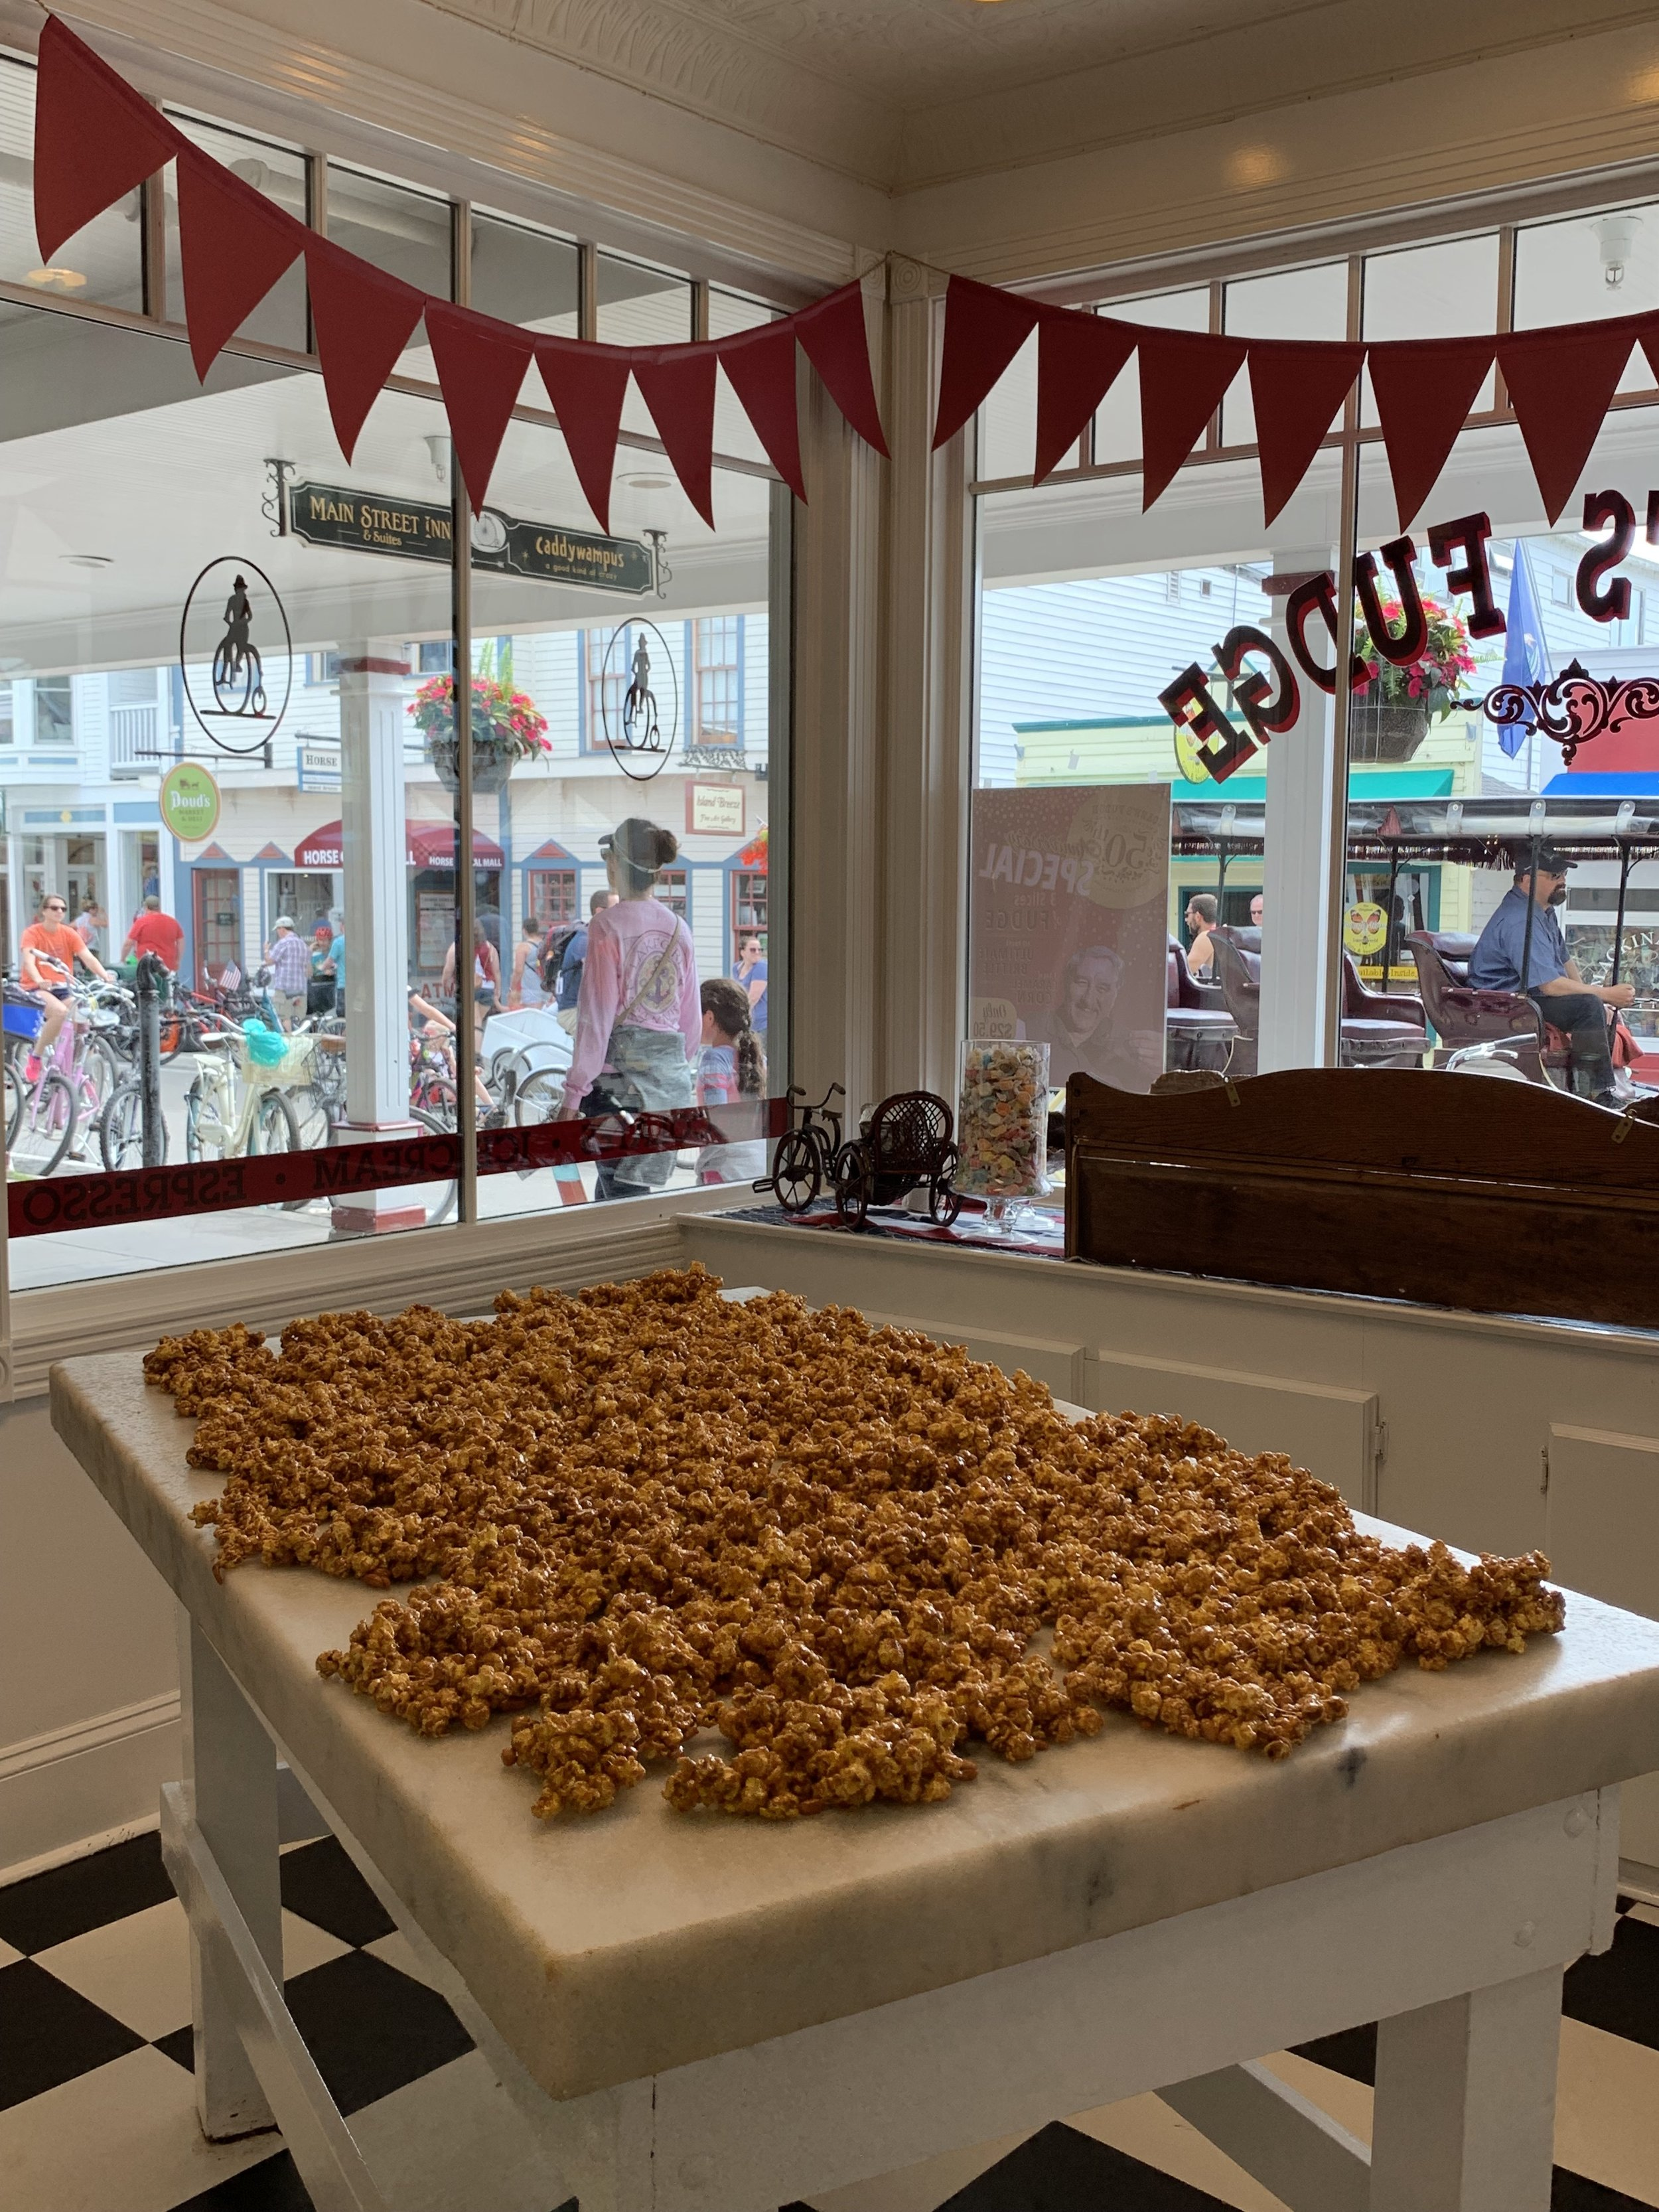 If you visit us in person, try the caramel corn!